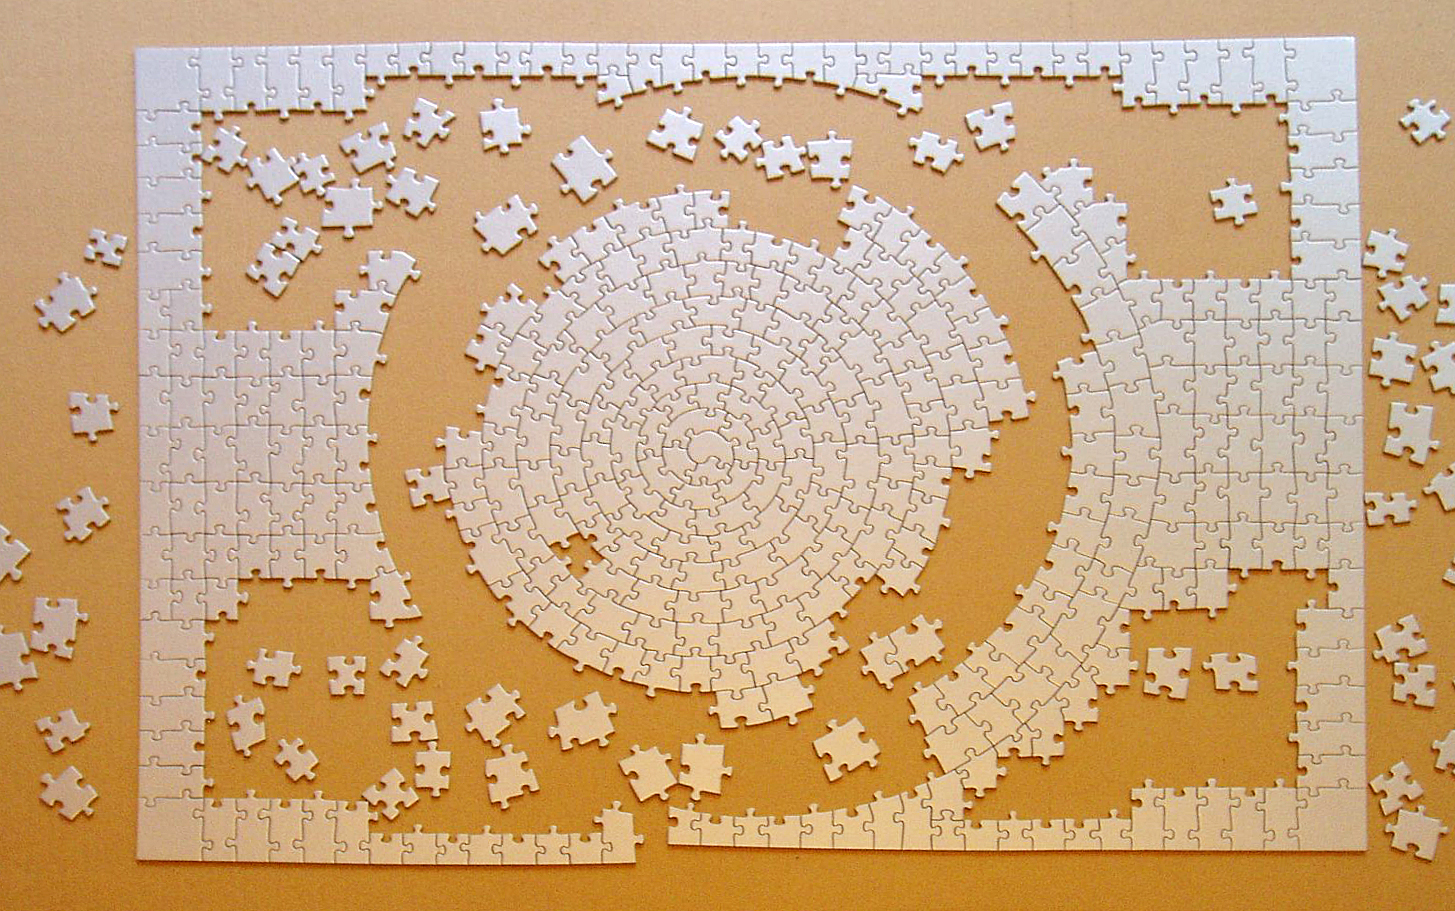 steps to putting a jigsaw puzzle together How to put a puzzle together really fast zeppelingitis loading unsubscribe from zeppelingitis cancel unsubscribe working jigsaw puzzle tips and tricks: from unboxing to glueing up - duration: 13:41 redneckresponder 70,747 views.